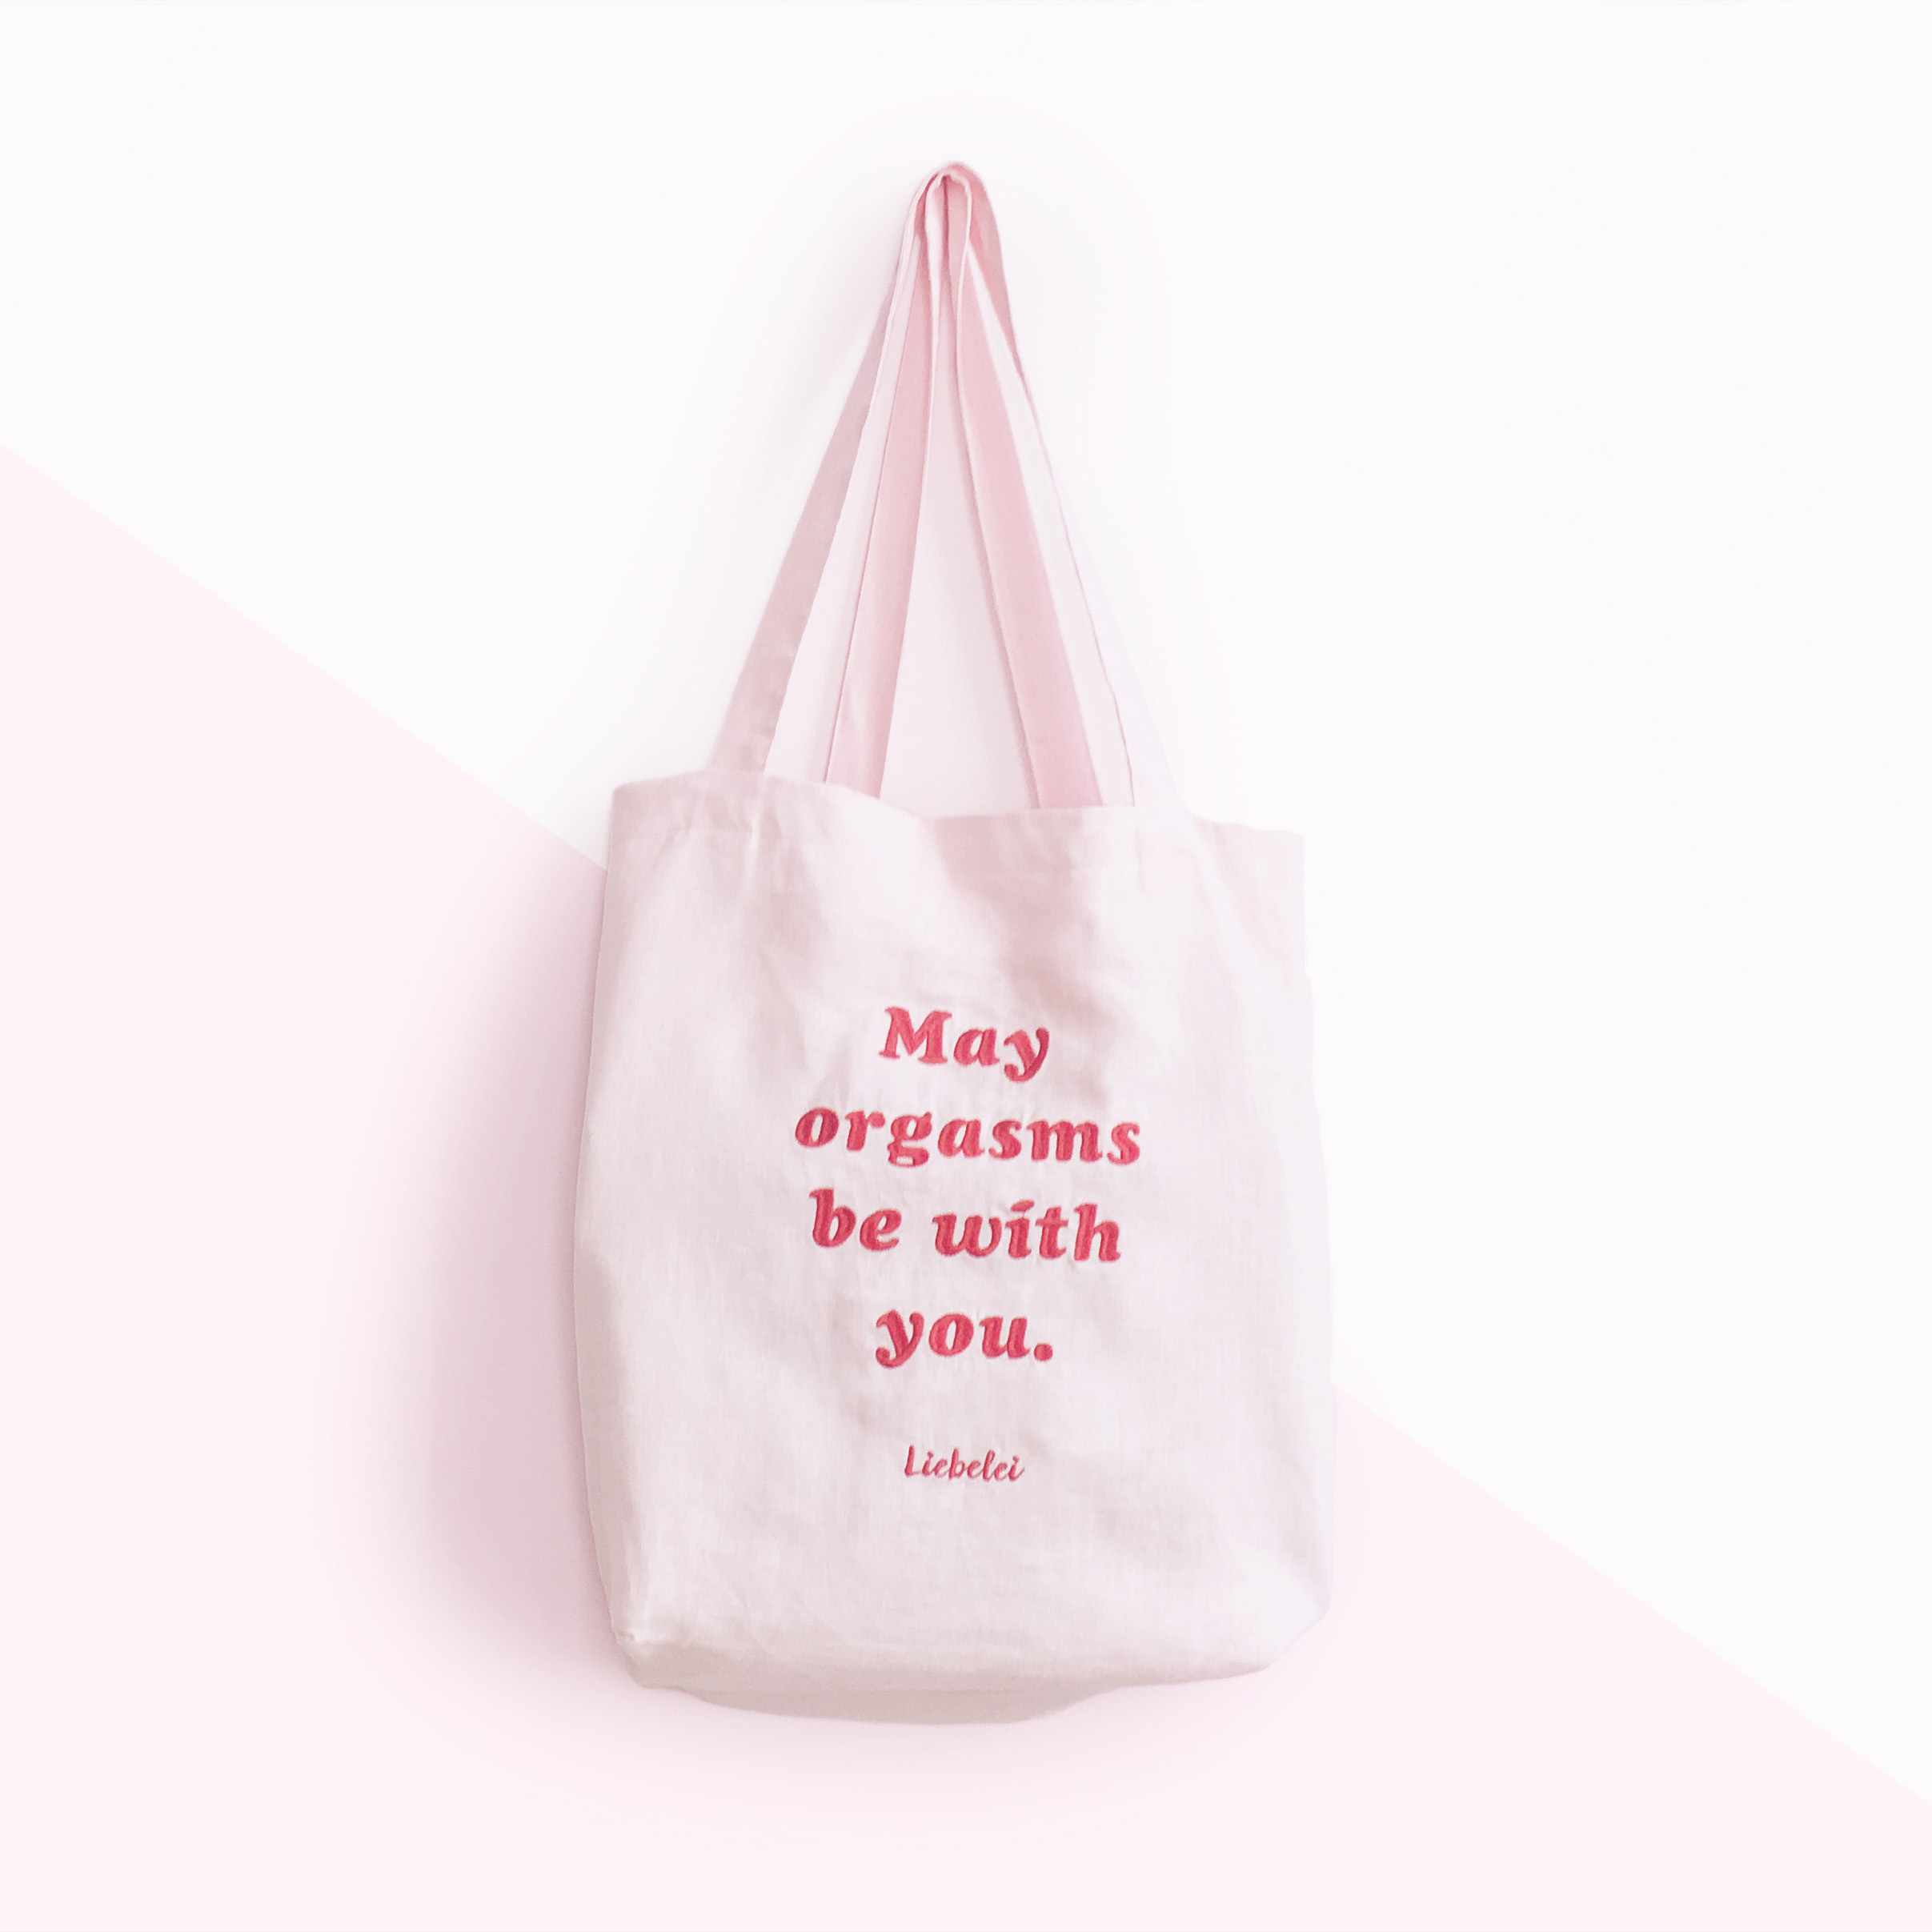 may-orgasms-be-with-you-tasche-square.jpg